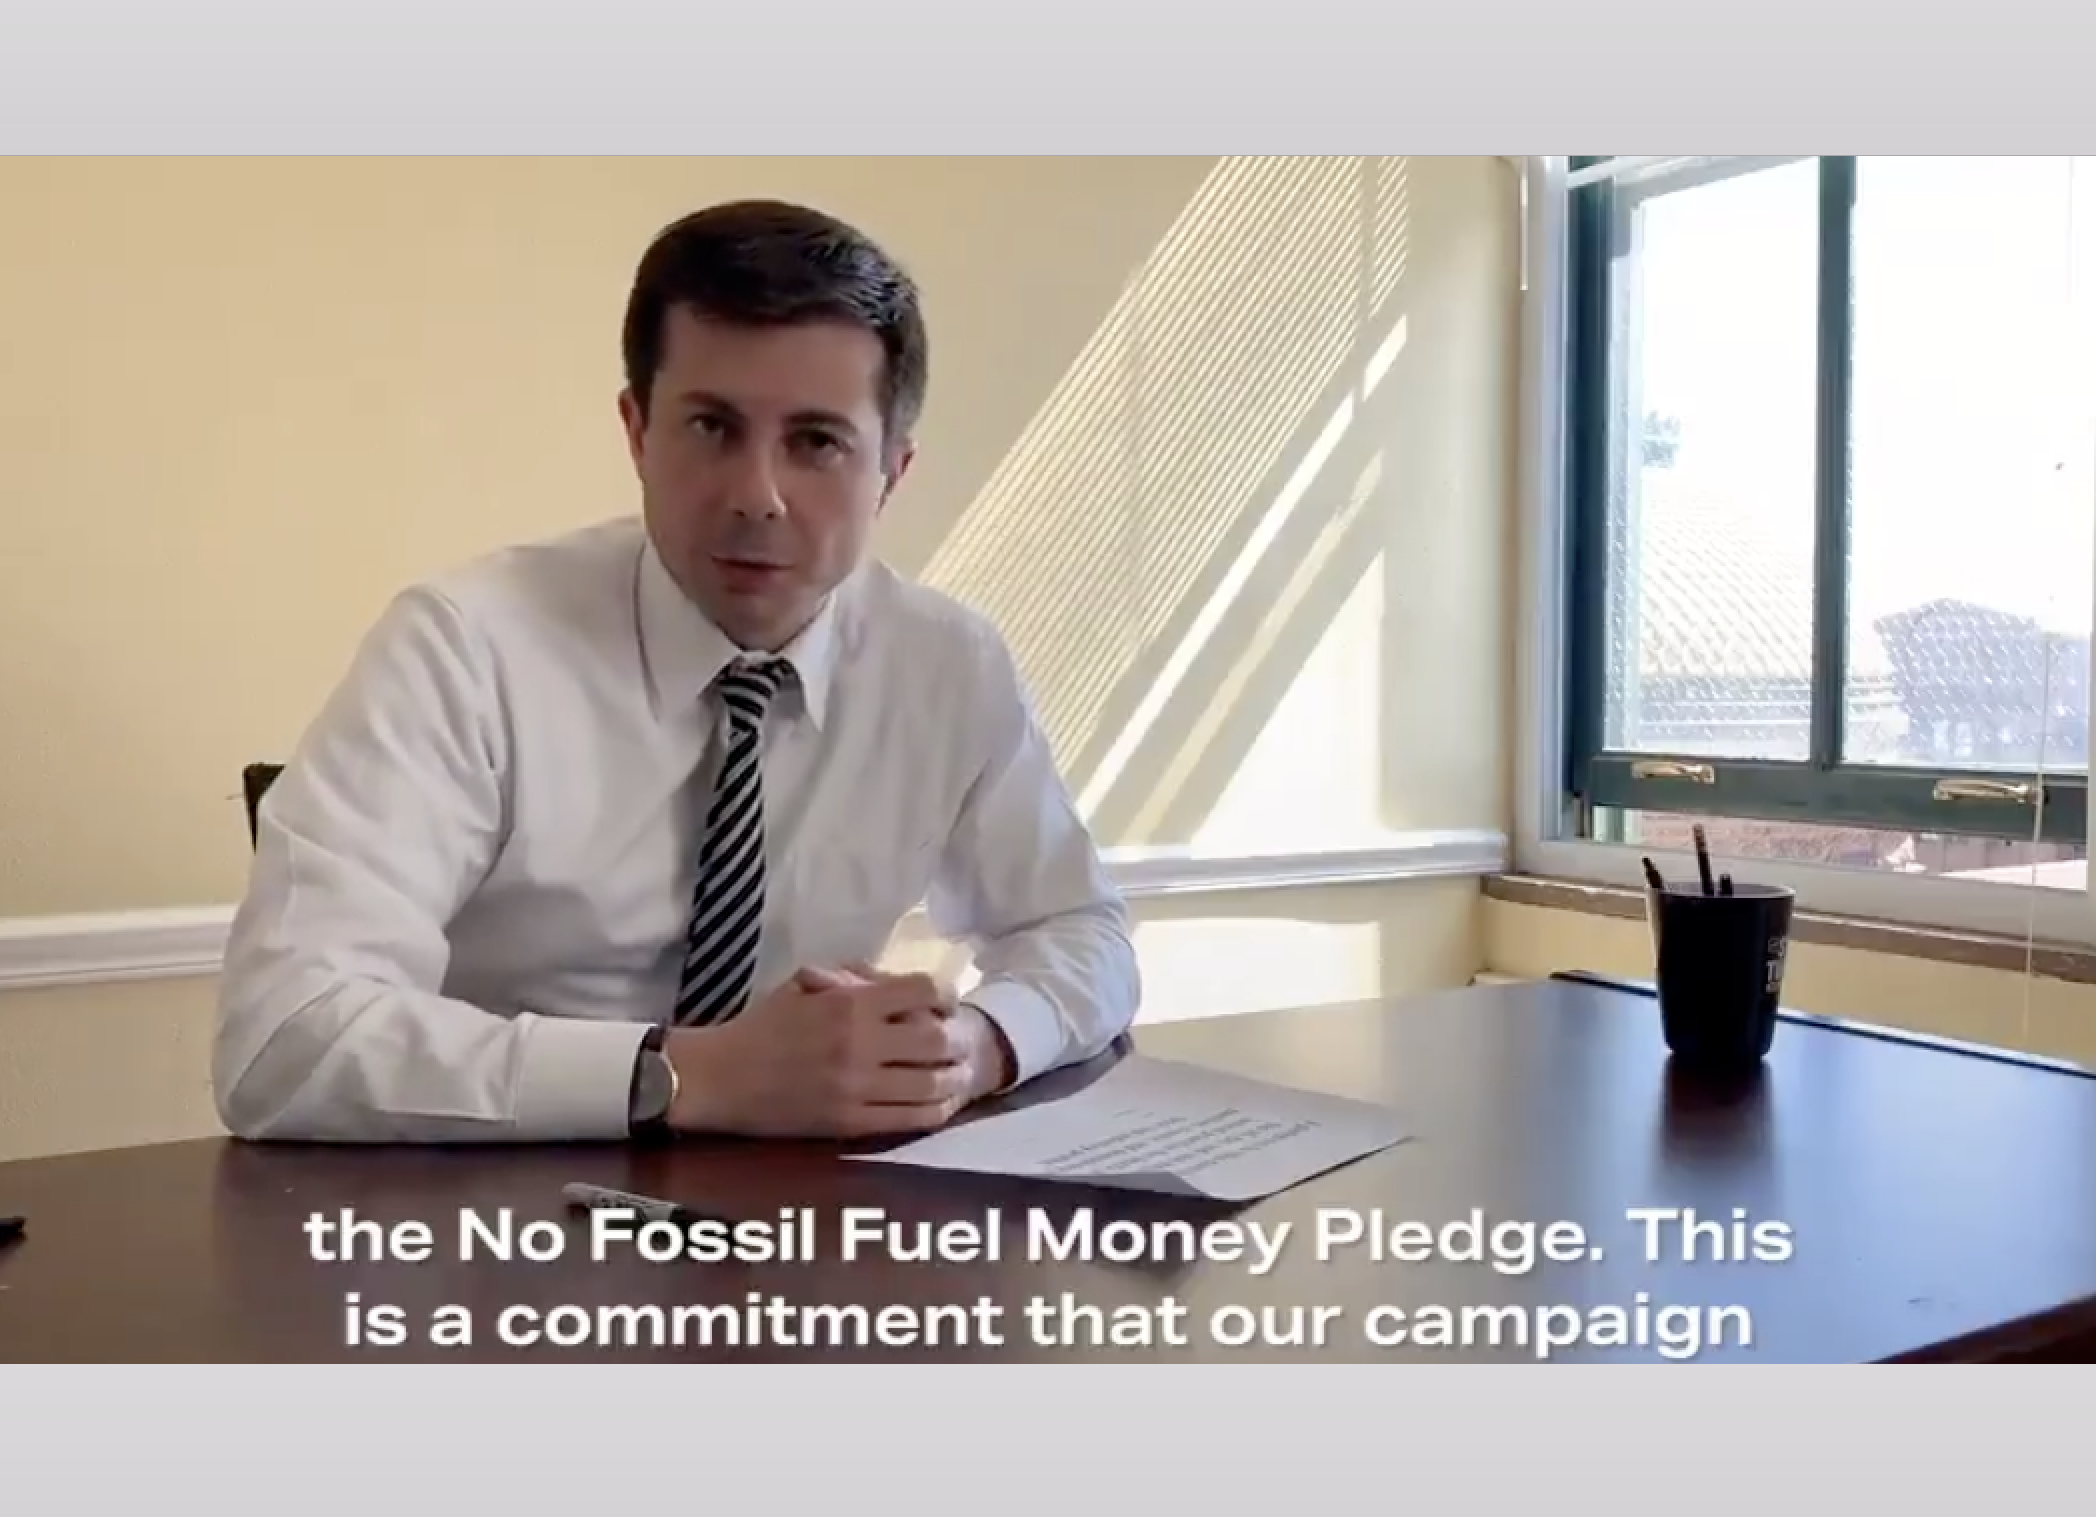 Response to Pete Buttigieg Signing the No Fossil Fuel Money Pledge